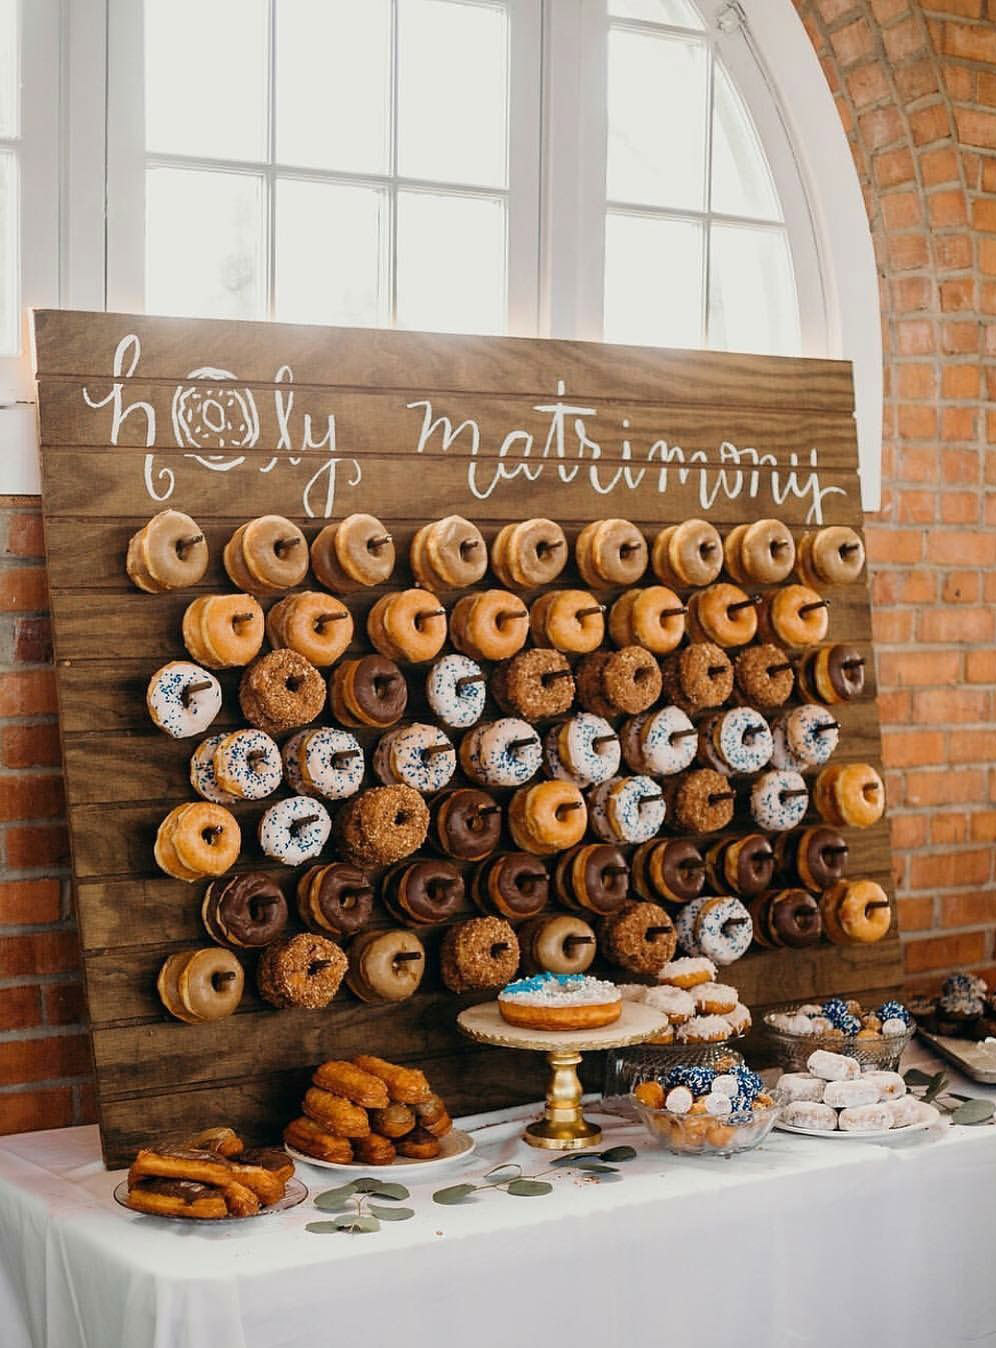 26 Inspiring Chic Wedding Food & Dessert Table Display Ideas